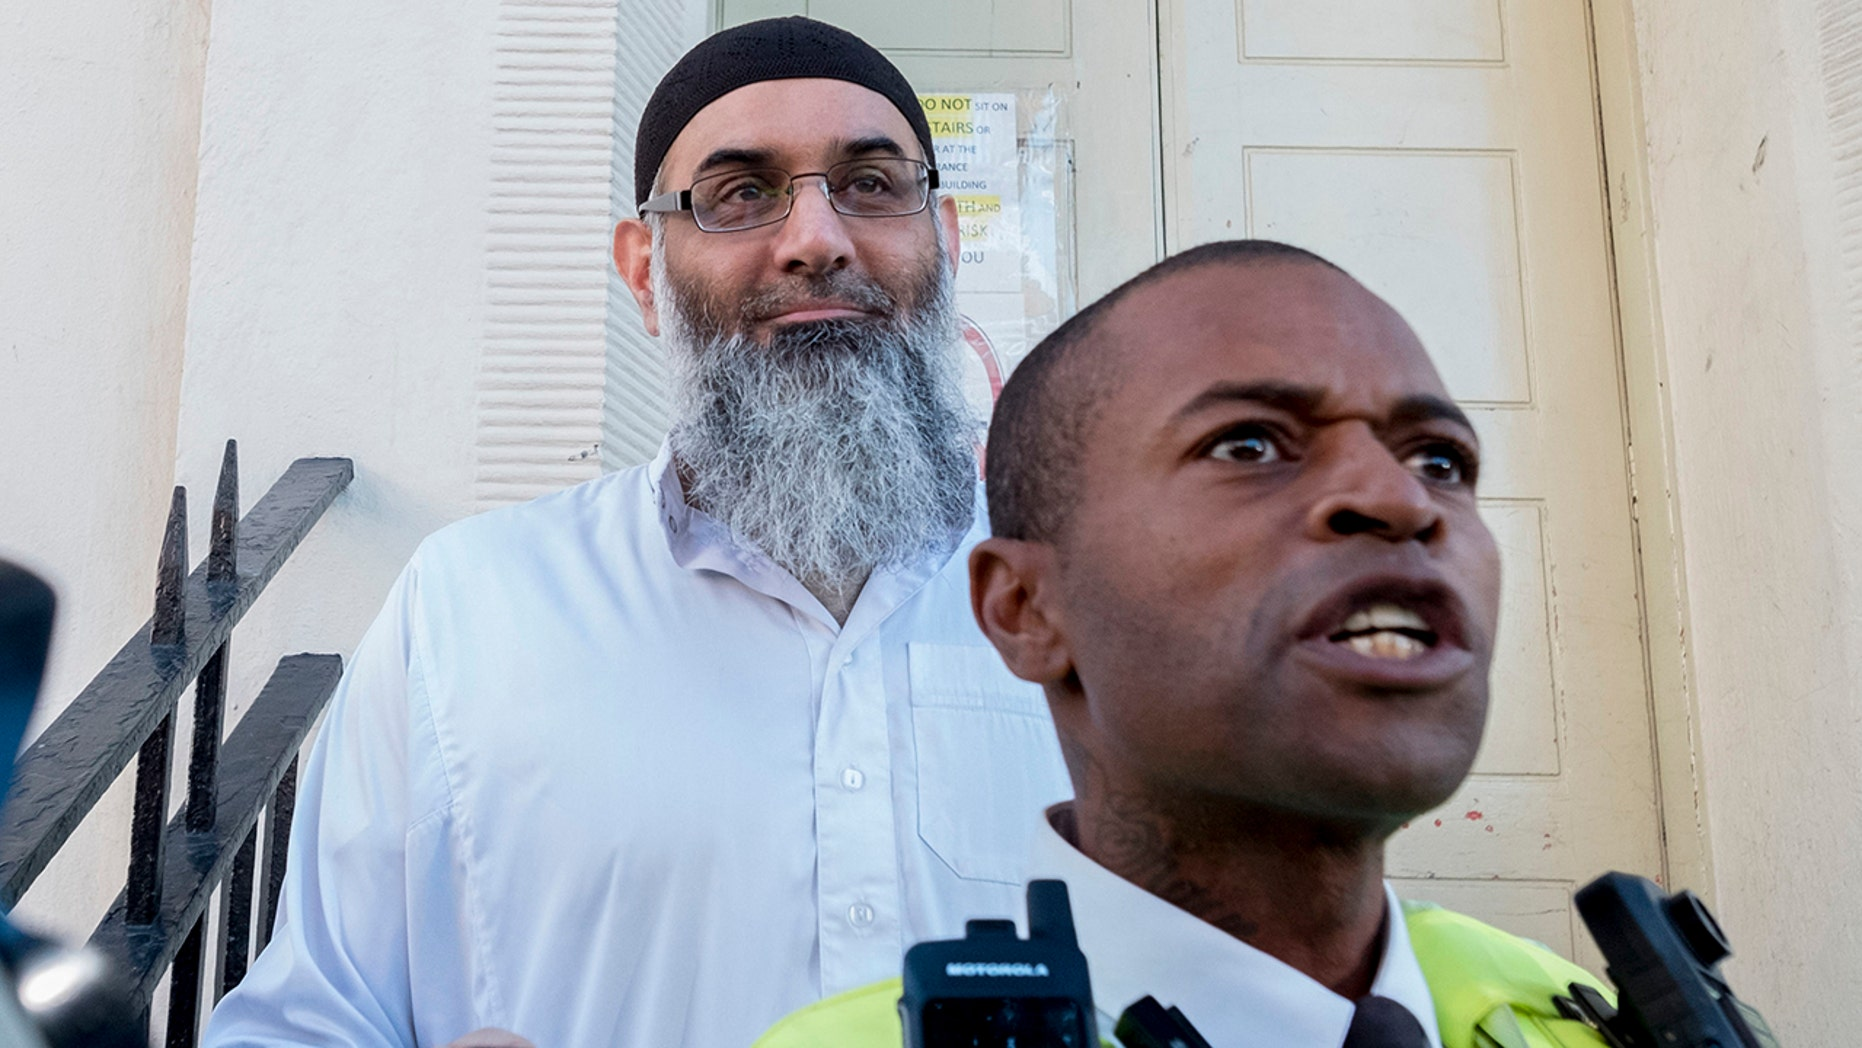 Anjem Choudary leaves a bail hostel in north London after his release from Belmarsh Prison, Friday Oct. 19, 2018. A radical Islamic preacher was released from a British prison Friday after serving less than half of a 5-1/2-year prison sentence for encouraging support for the Islamic State group. (David Mirzoeff/PA via AP)